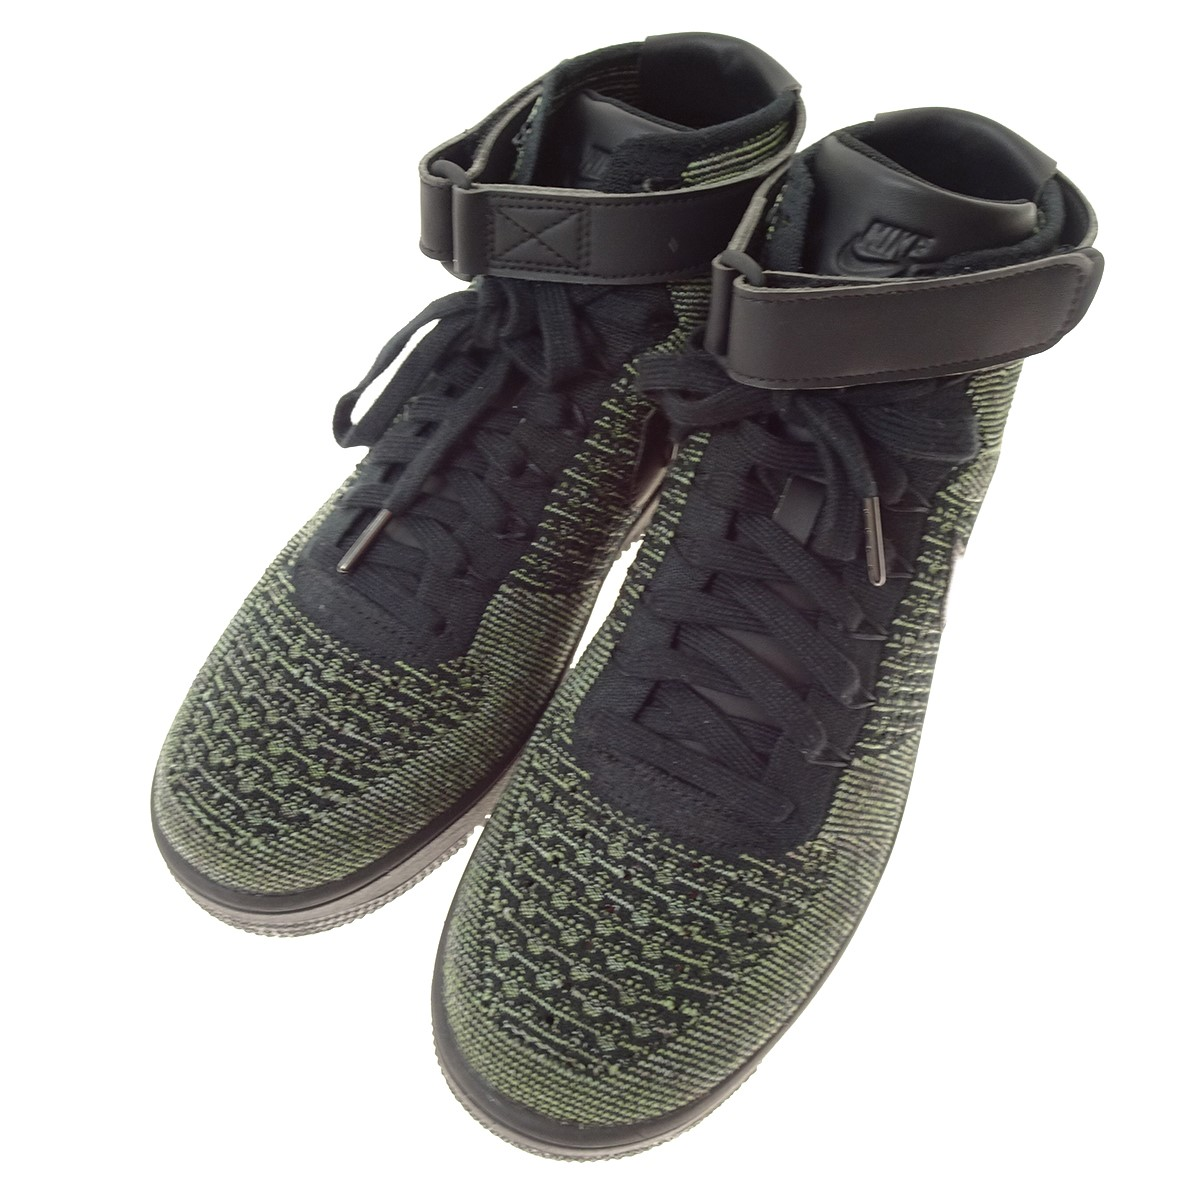 NIKE AIR FORCE1 ULTRA FLYKNIT MID sneakers 817,420 301 palm green size: 28cm (Nike)